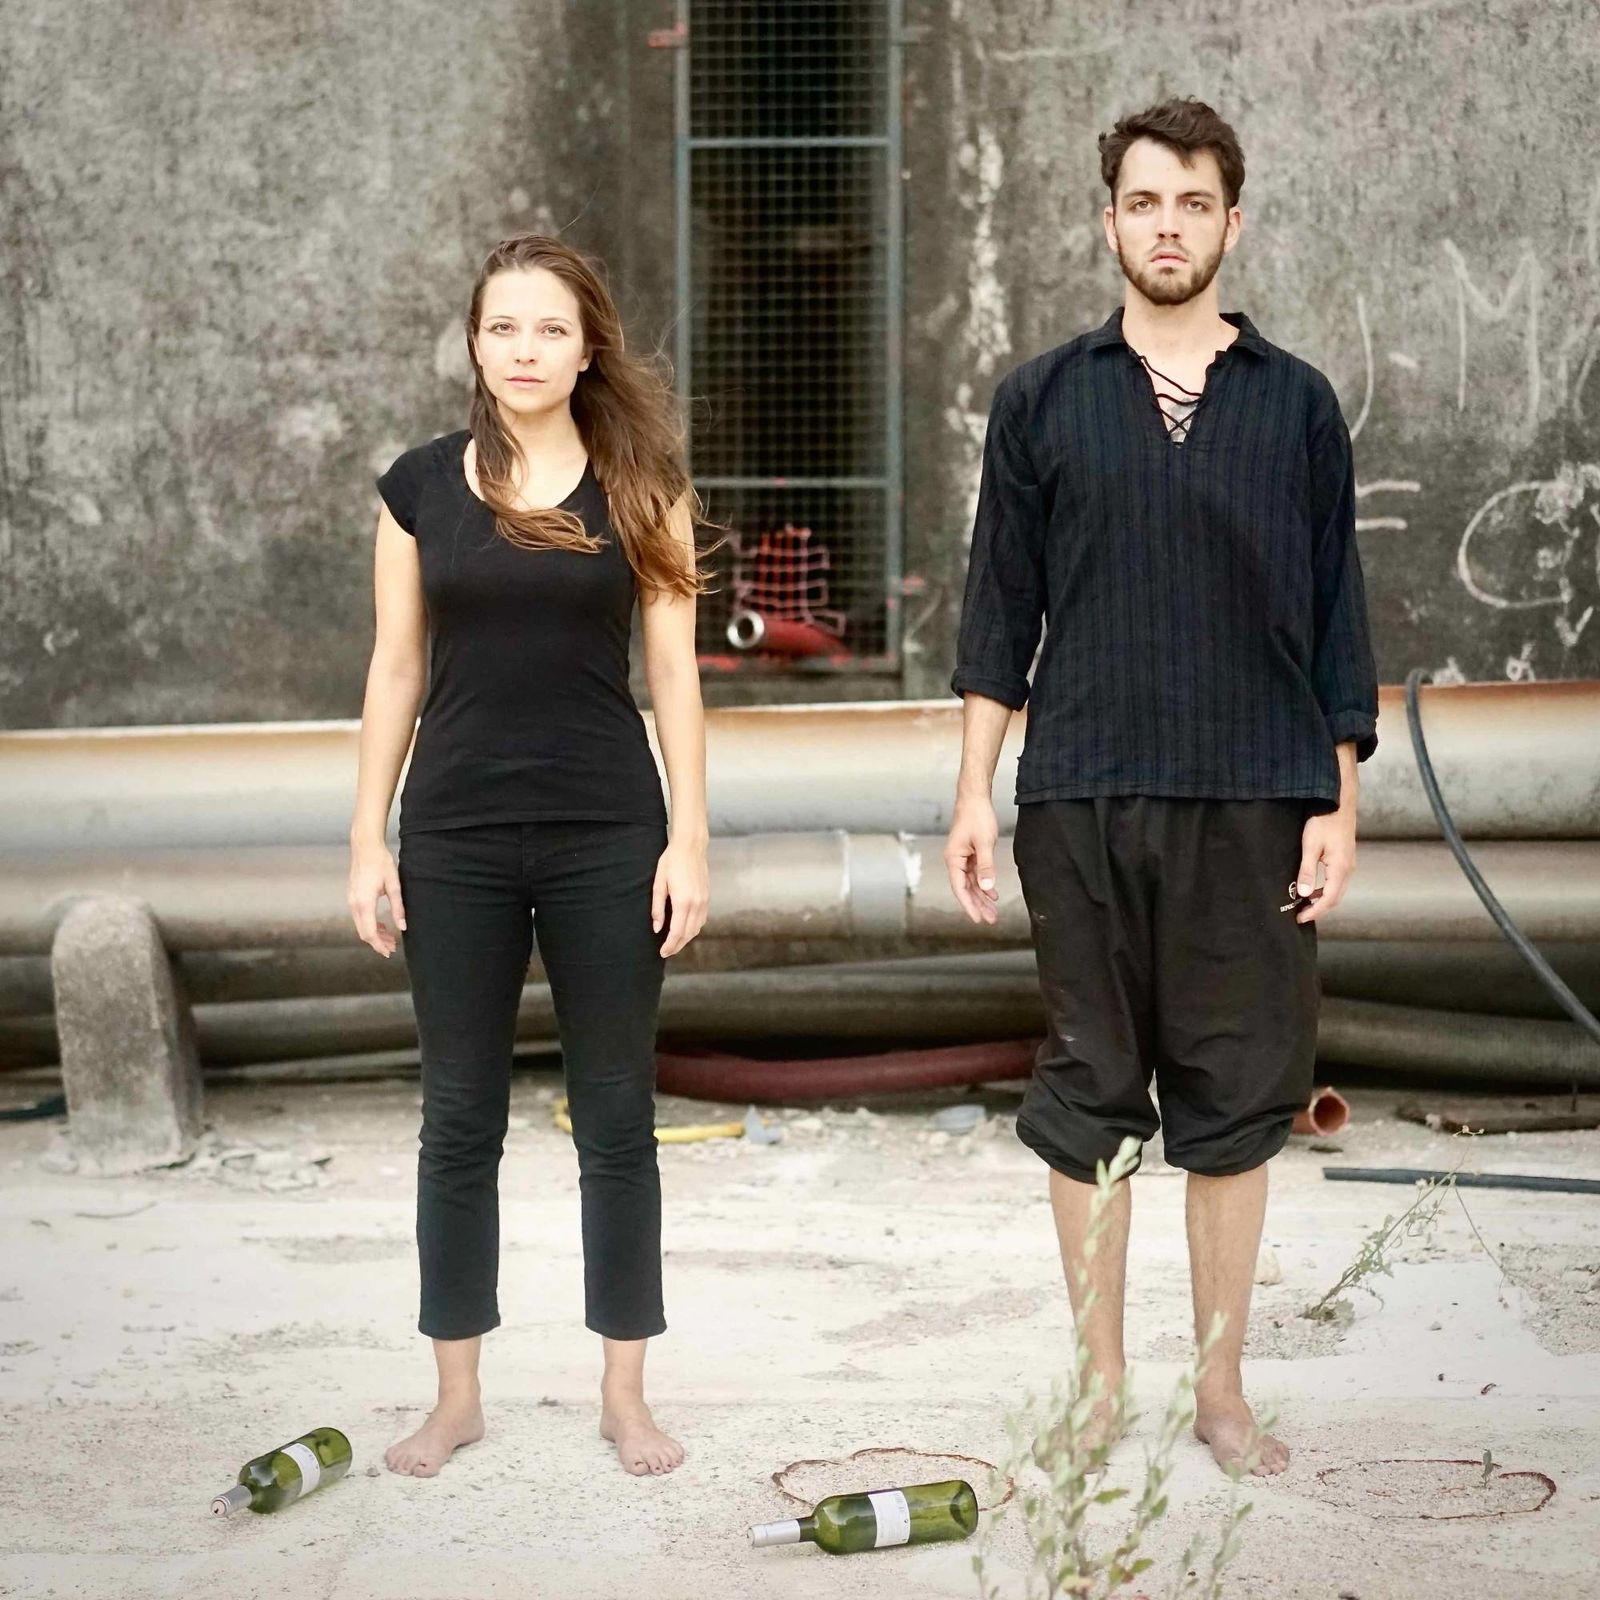 Live Performance by Martina Morger & Wassili Widmer/Photographie Virginie Vabre